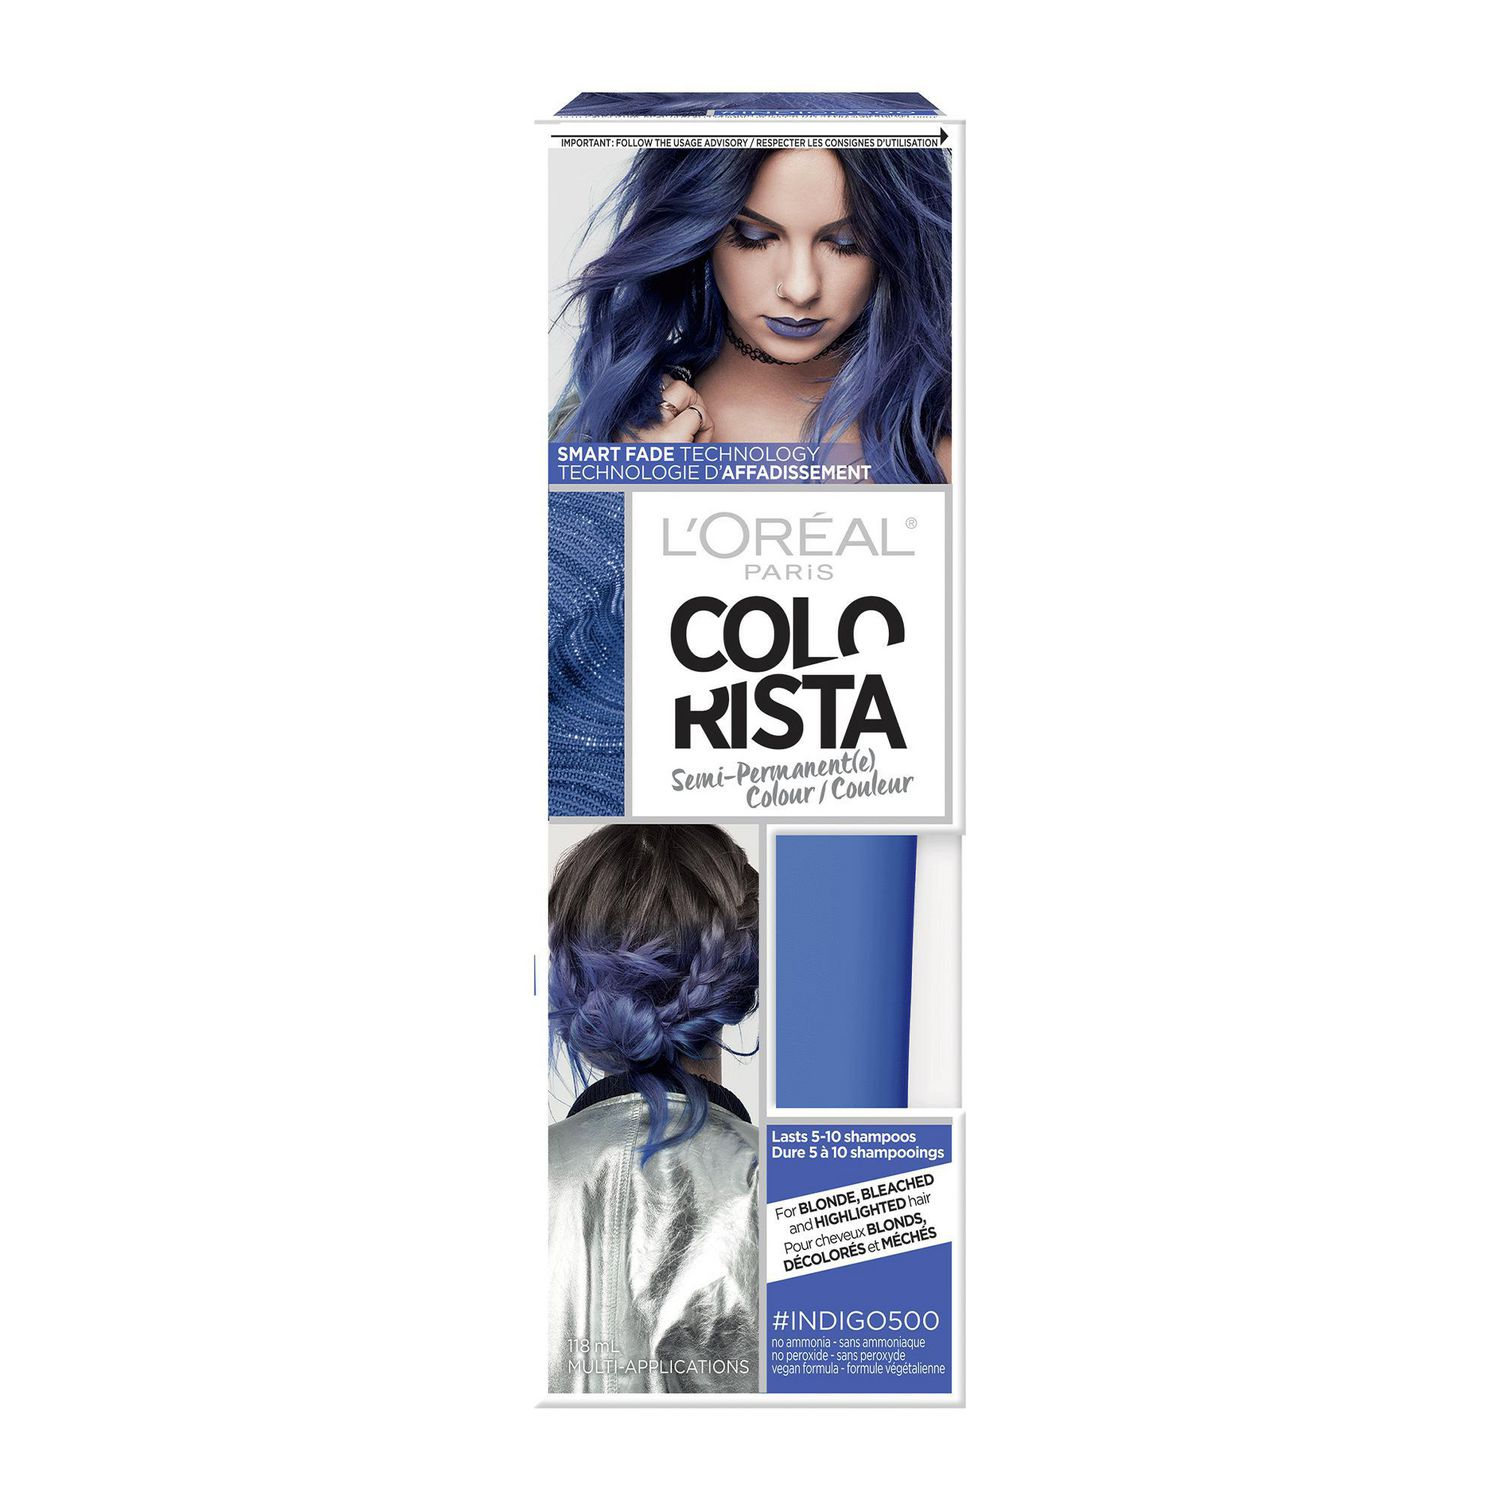 Loreal Paris Colorista Semi Permanent Hair Colour Walmart Canada